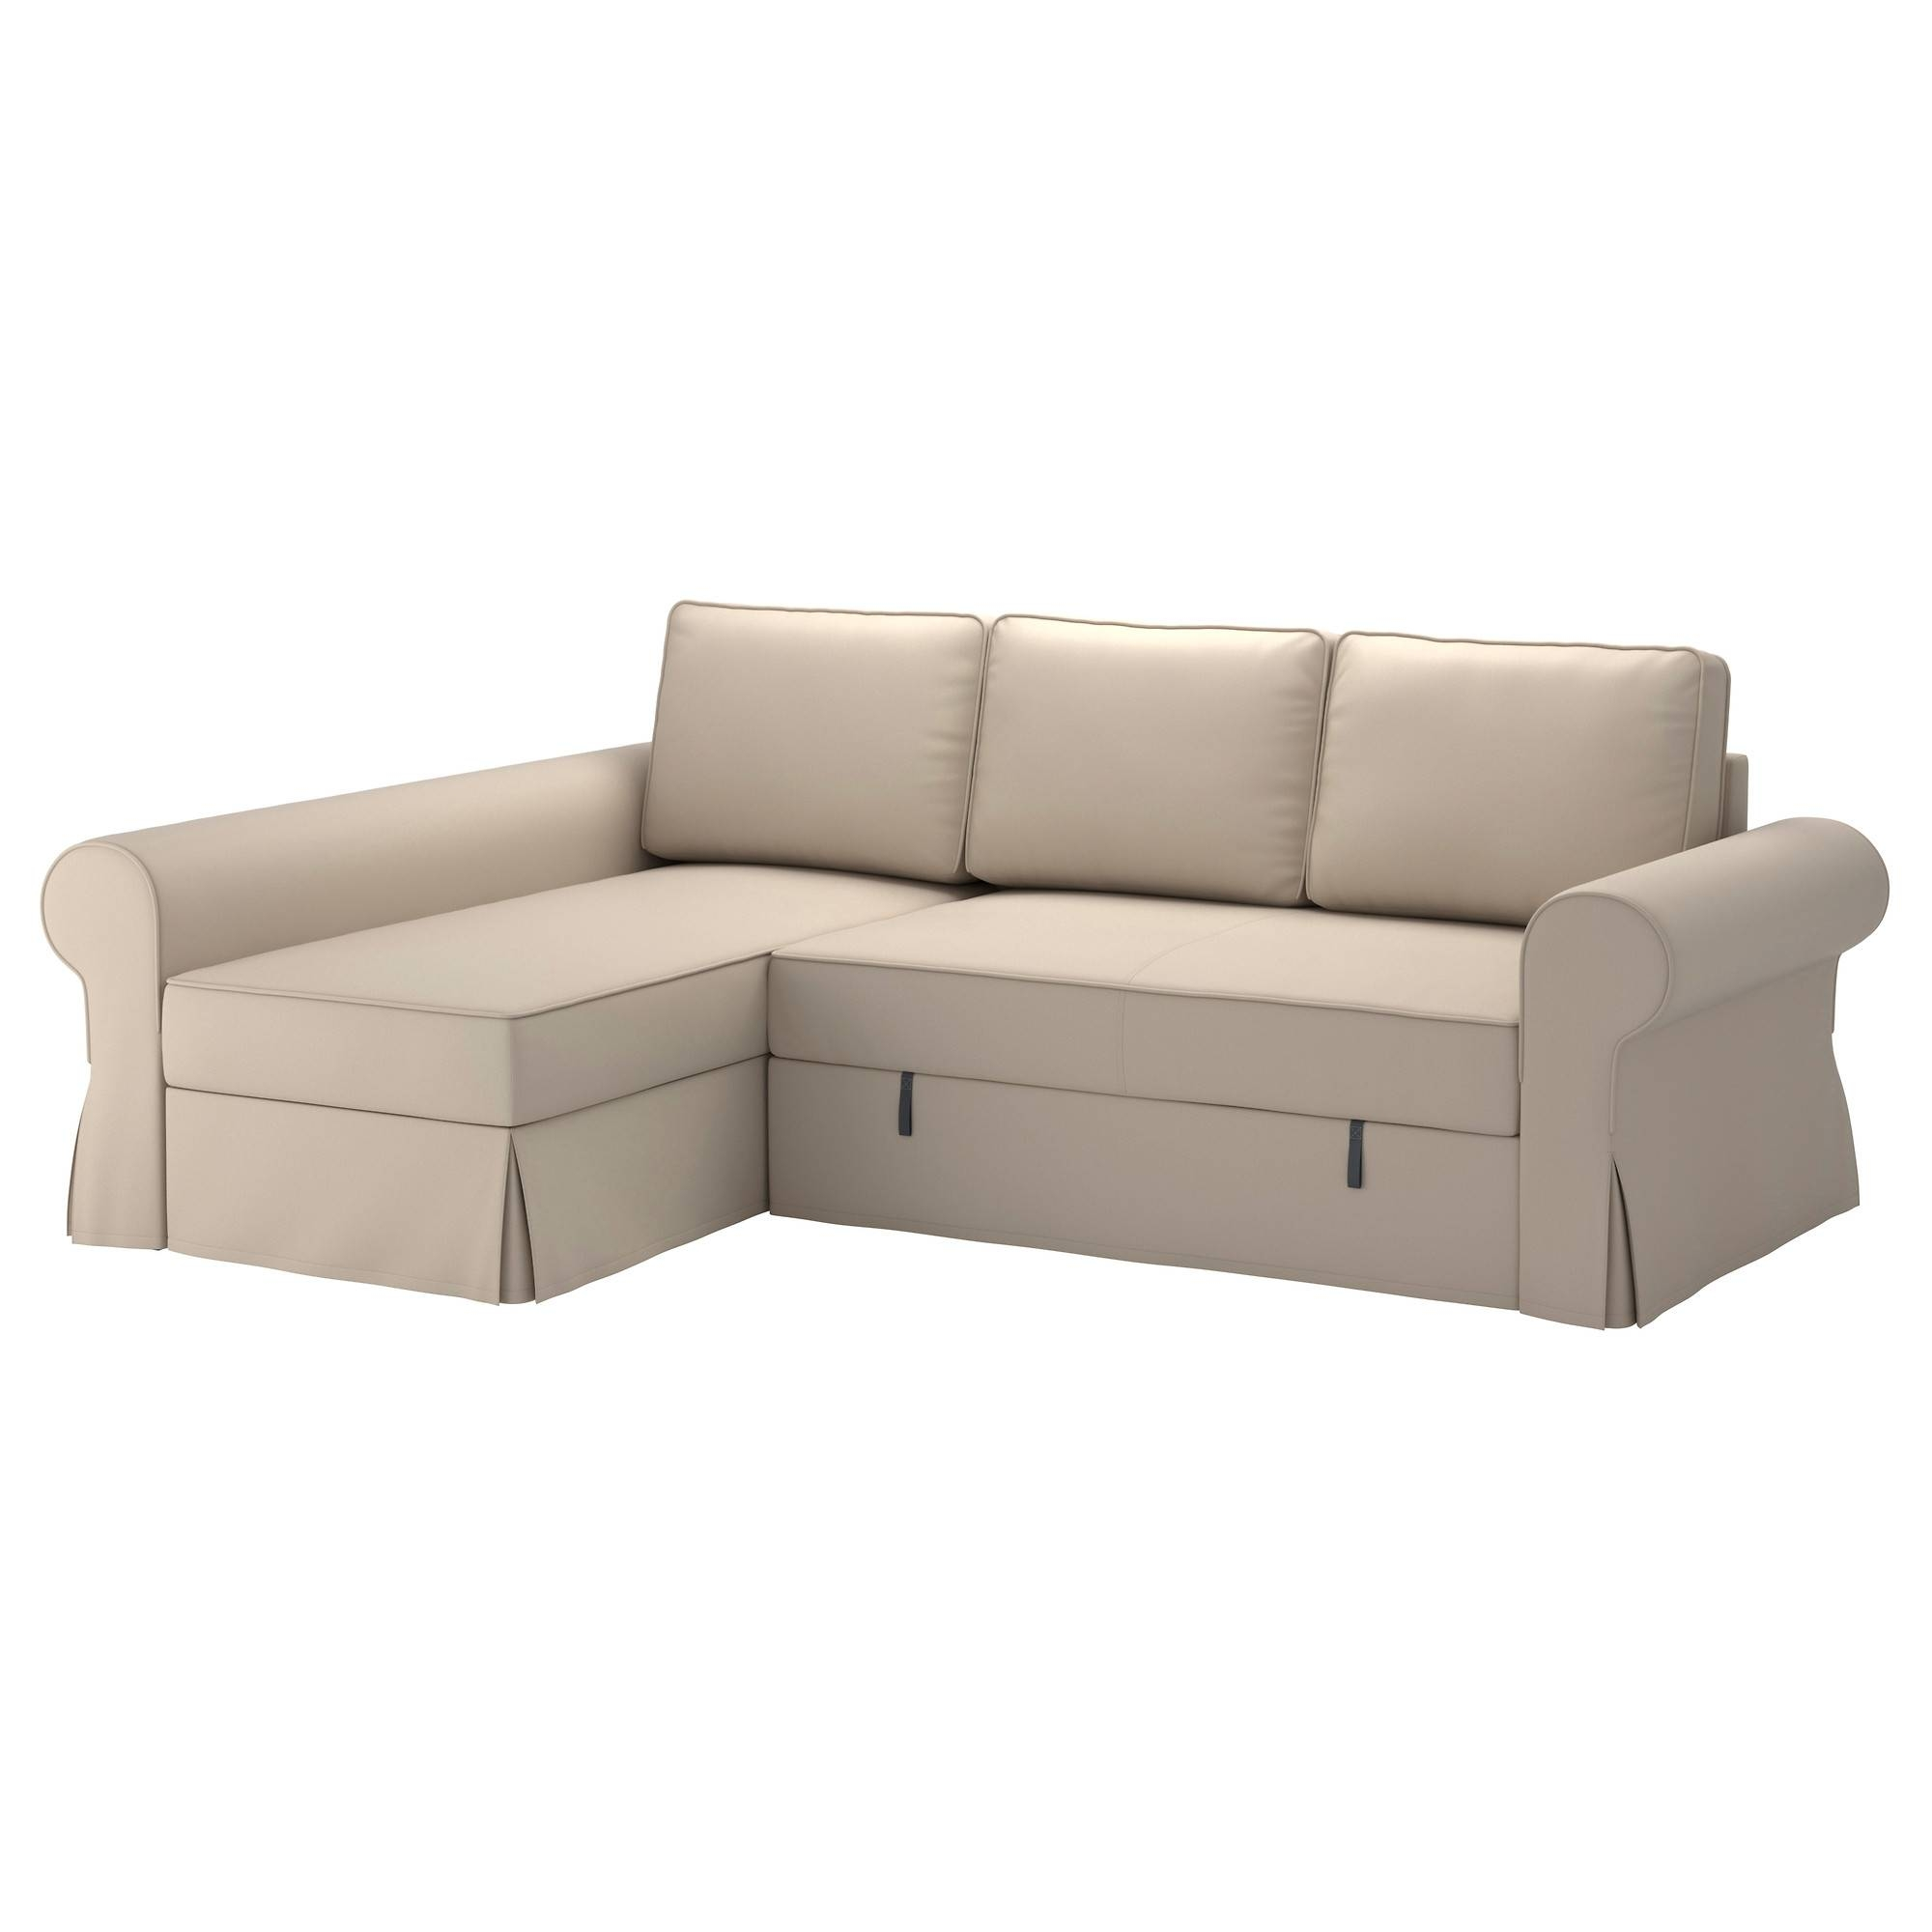 Sofas: Classic Meets Contemporary Chaise Sofa Bed For Ideal Living With Ikea Sectional Sofa Sleeper (View 24 of 25)